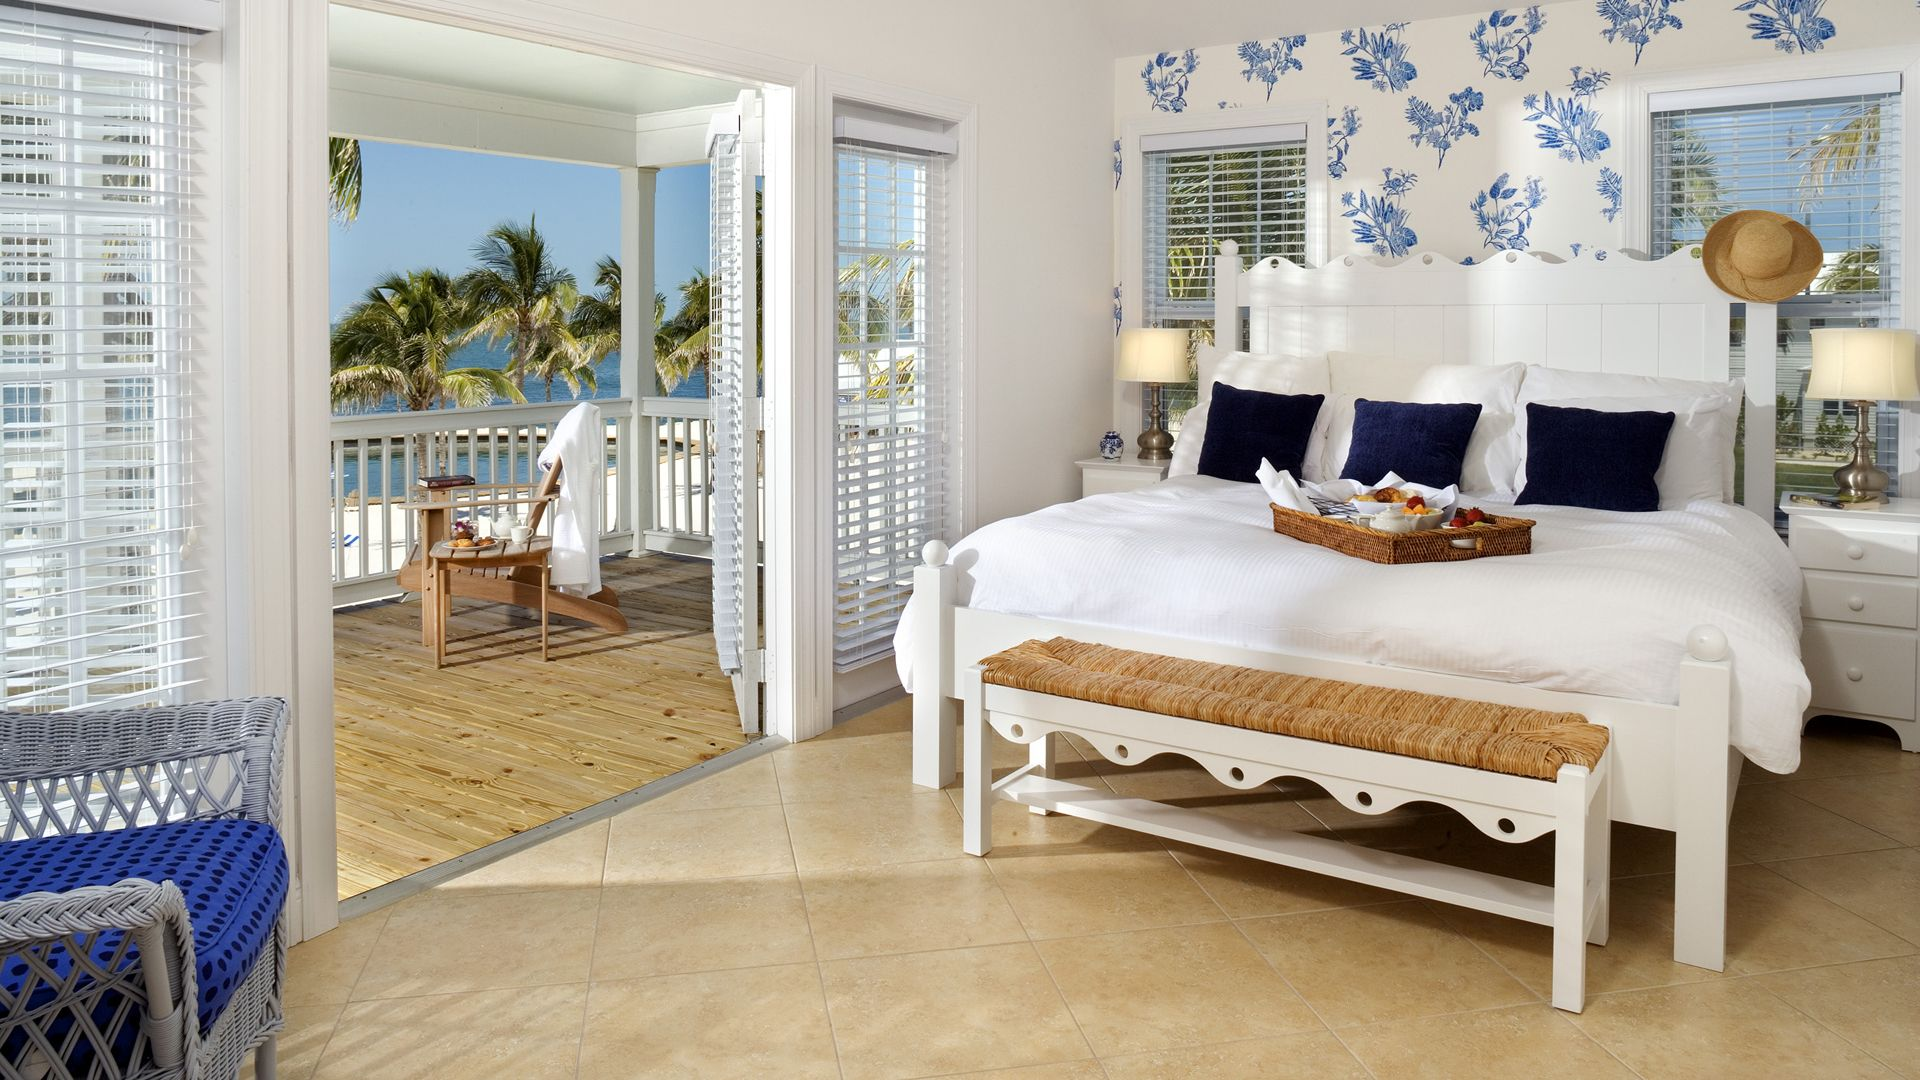 3-Bedroom Beachfront House | Tranquility Bay Resort